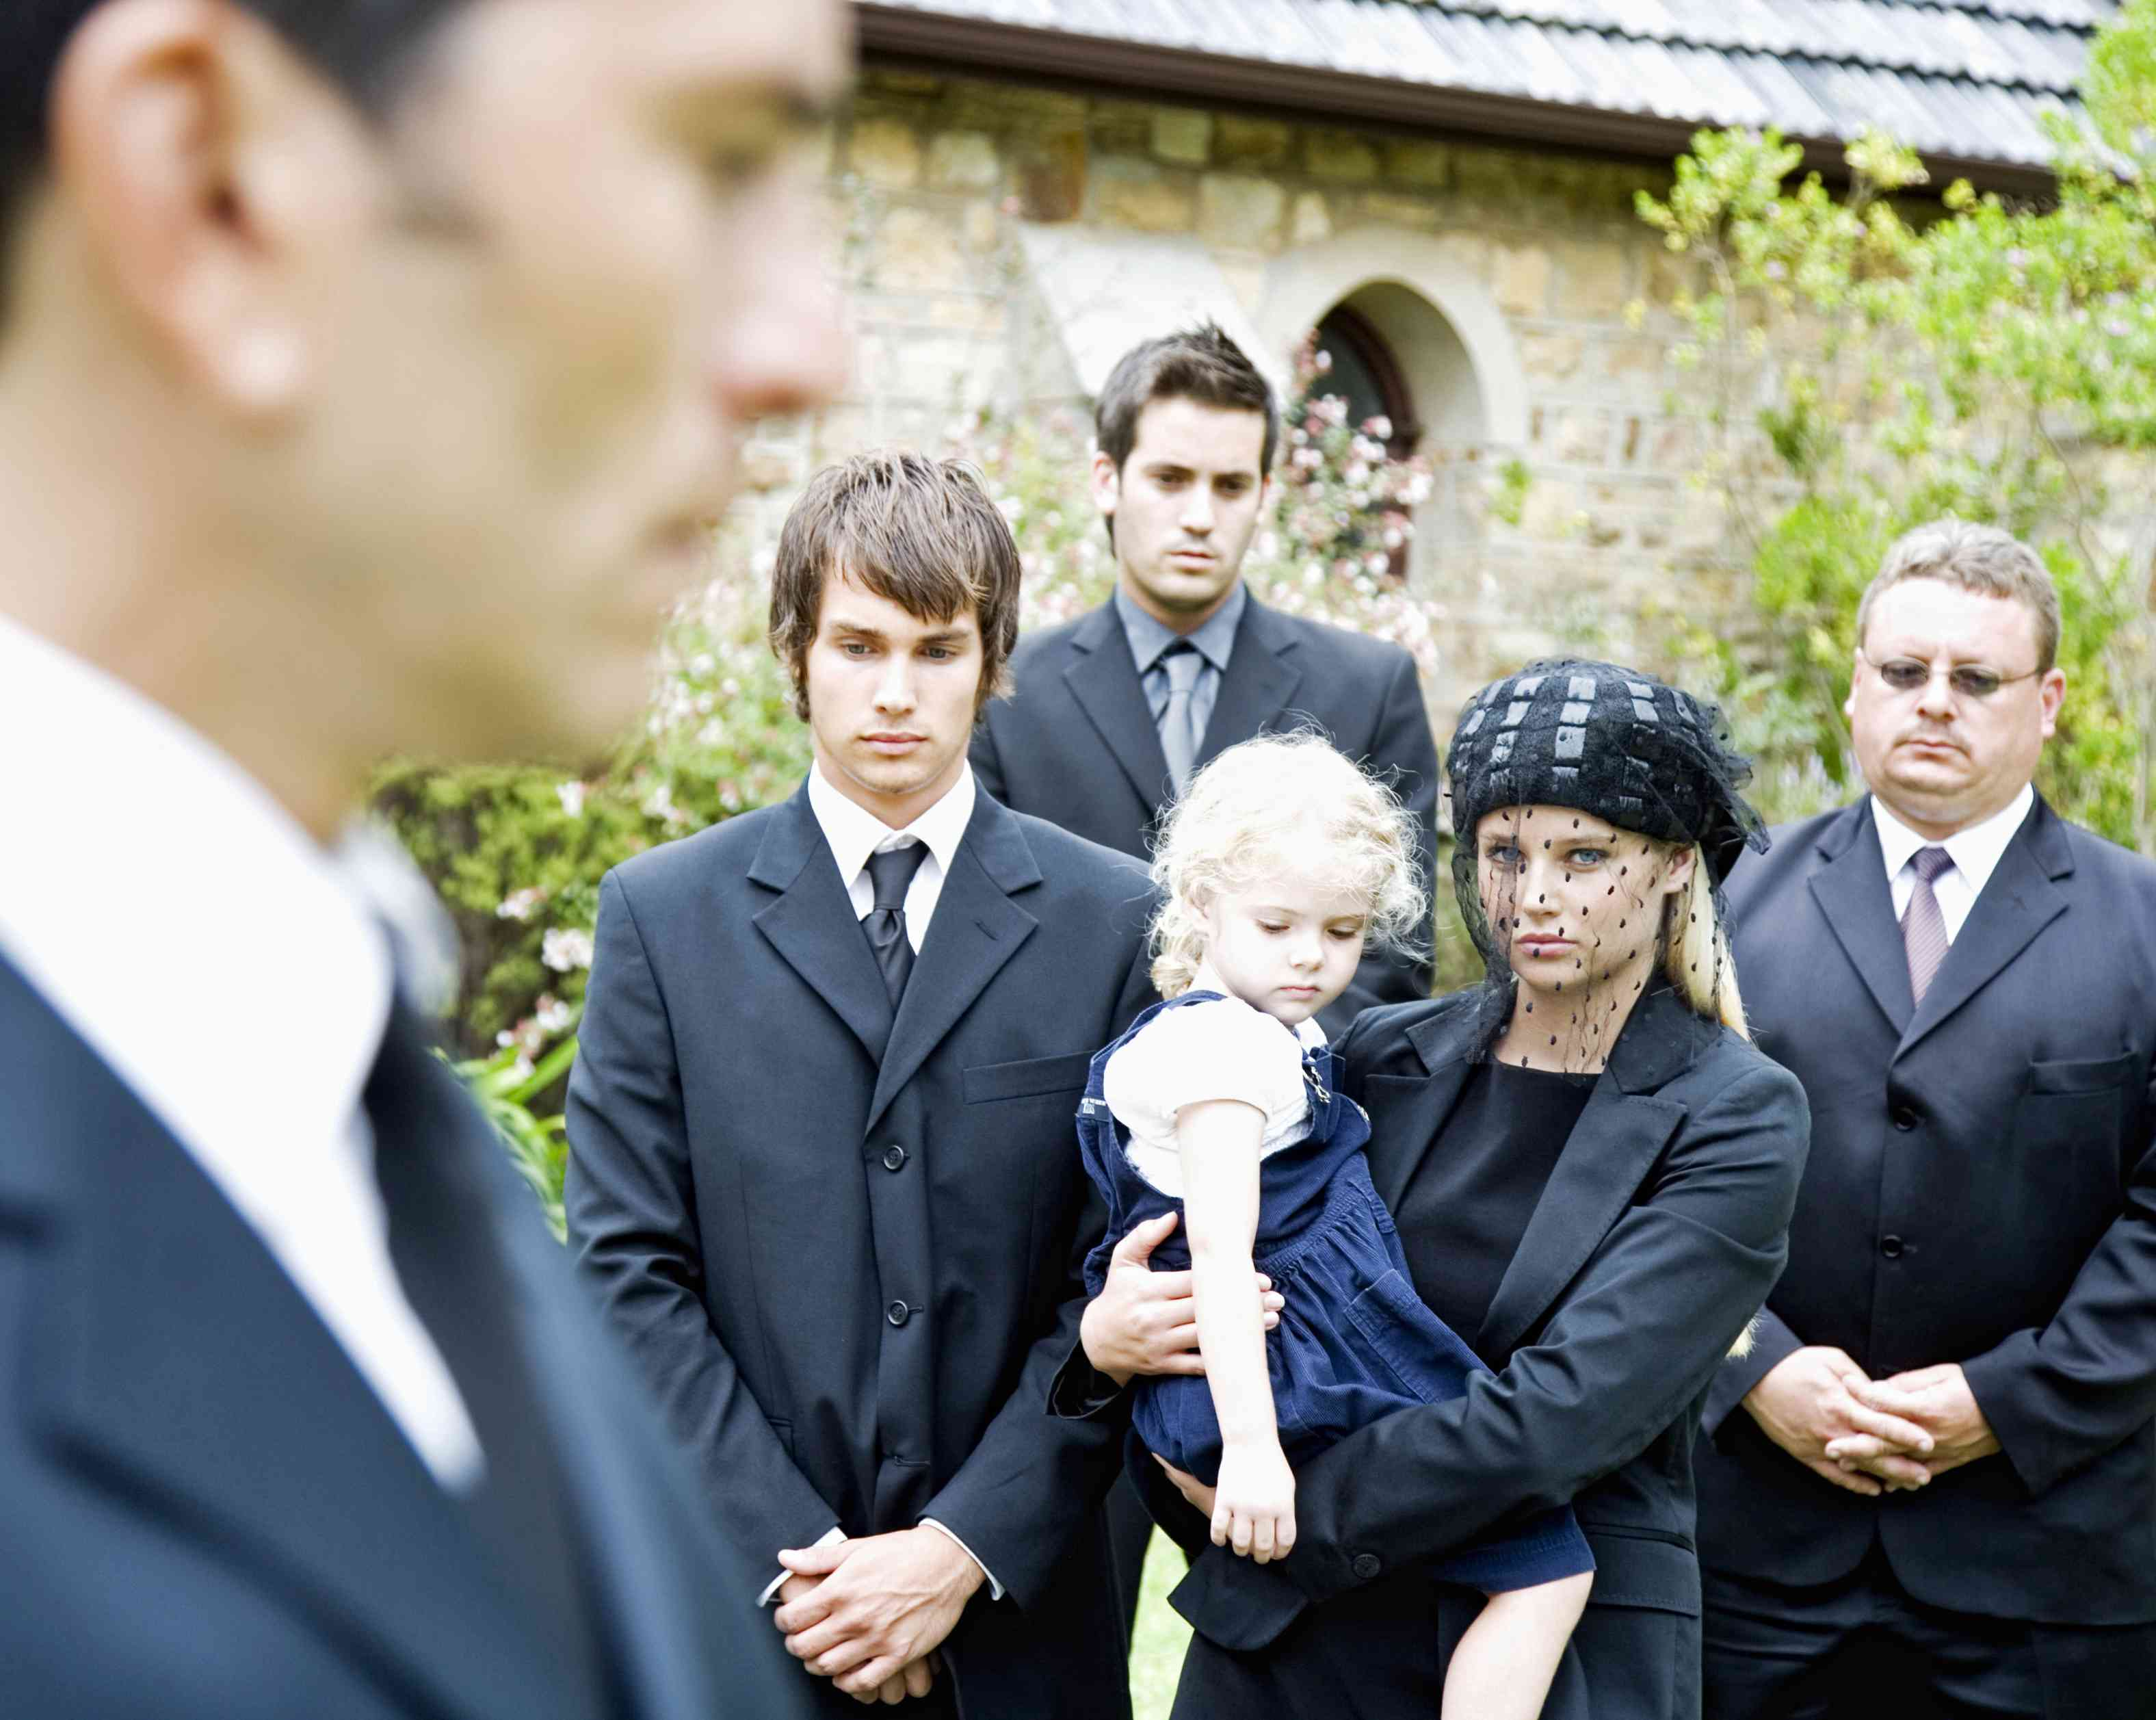 Adults and young child at a funeral service outside